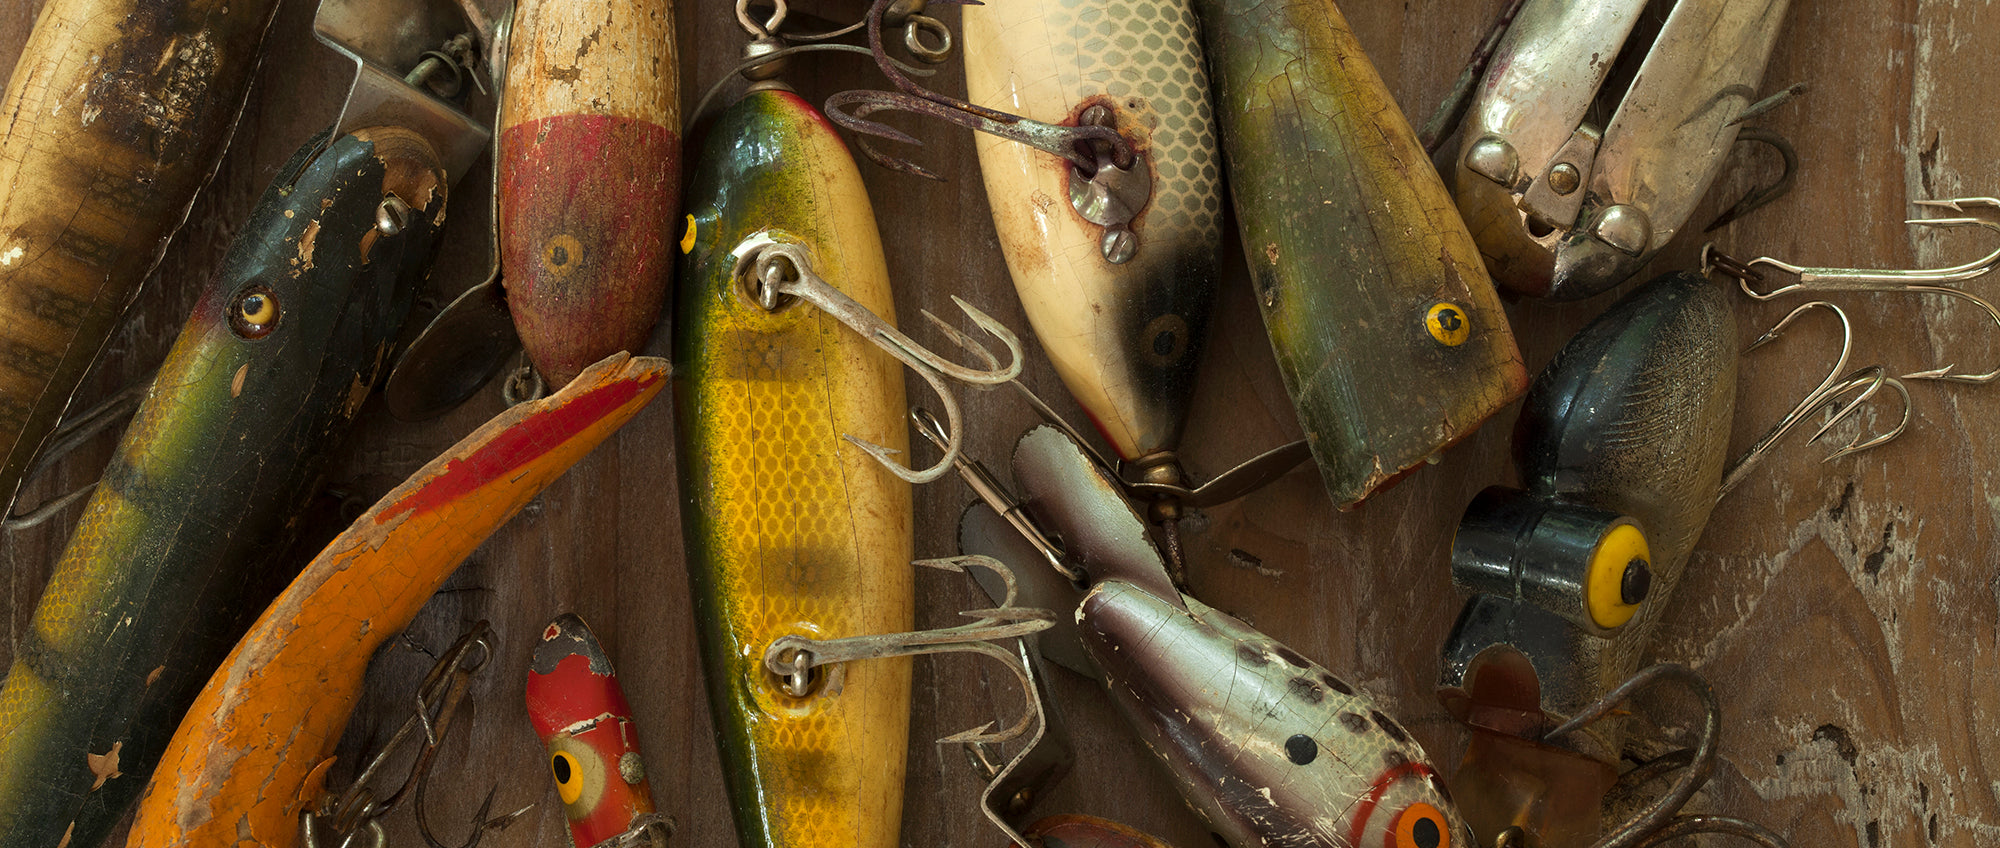 Collecting Fishing Lures